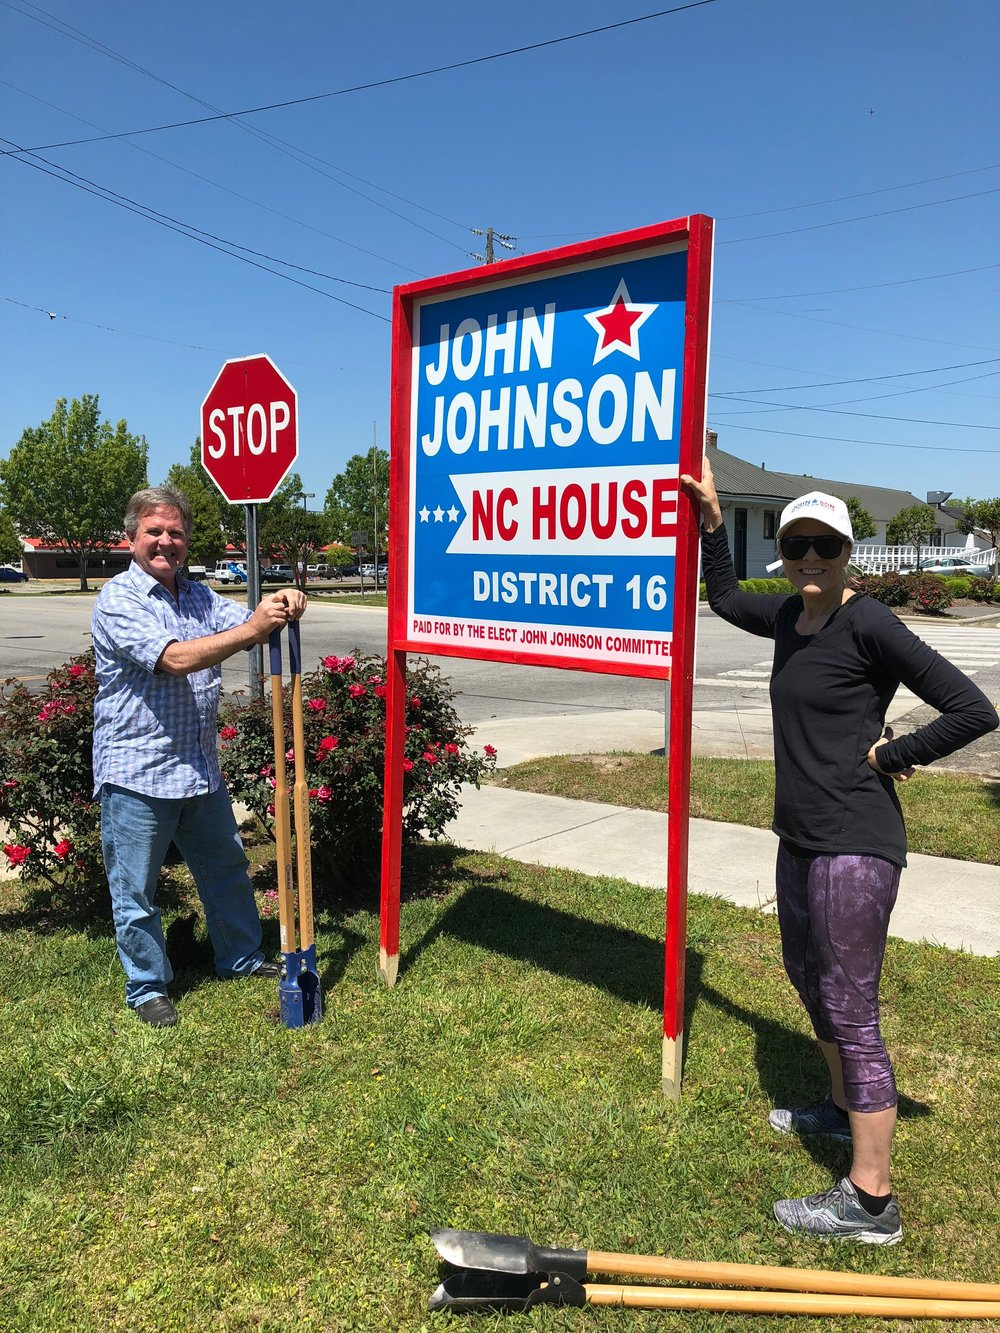 A big thanks to Liz Piacenza with the campaign signs